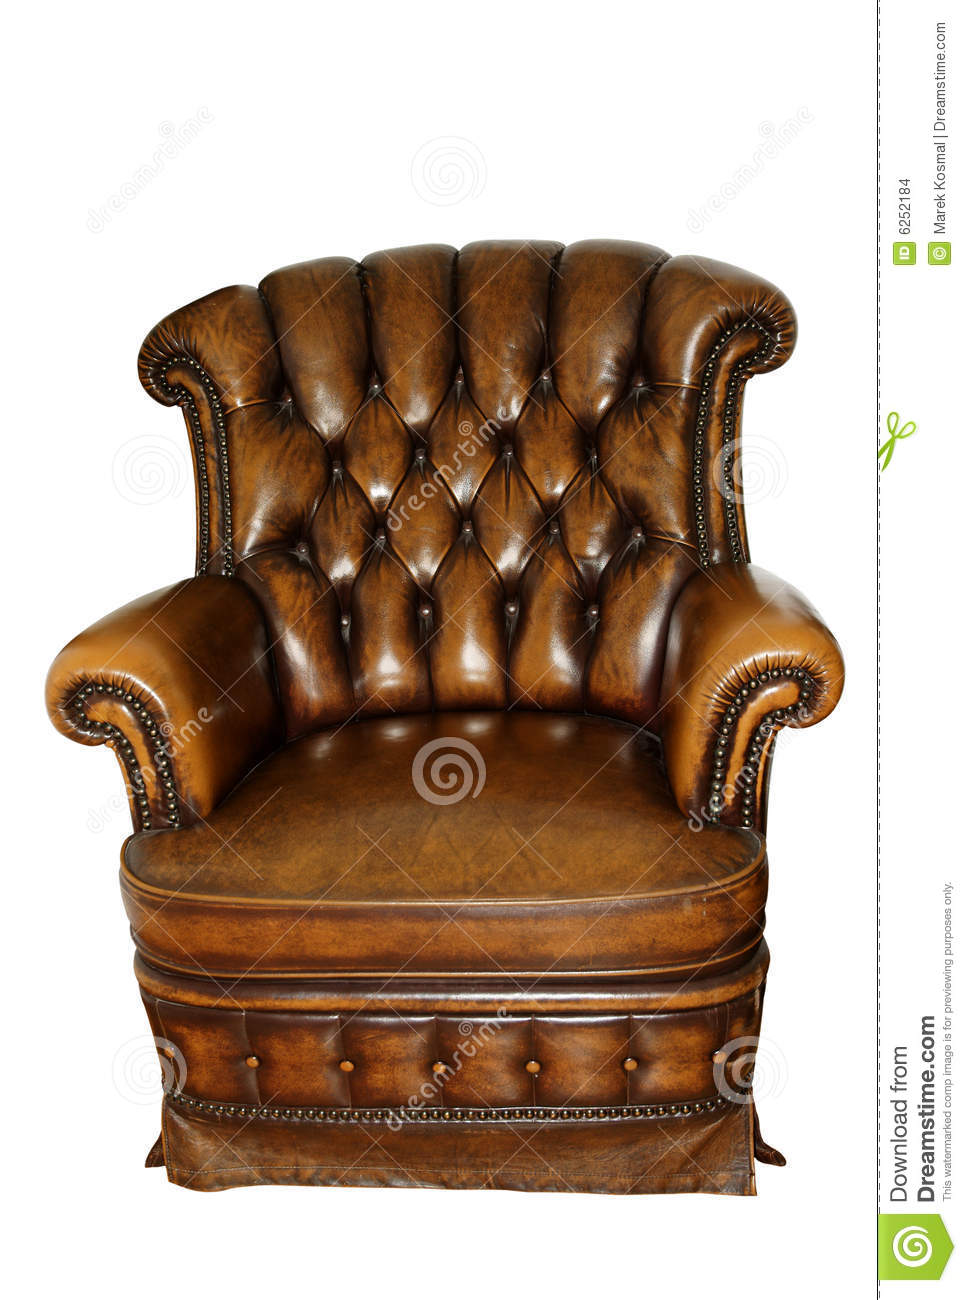 Old armchair stock photo. Image of furniture, background ...